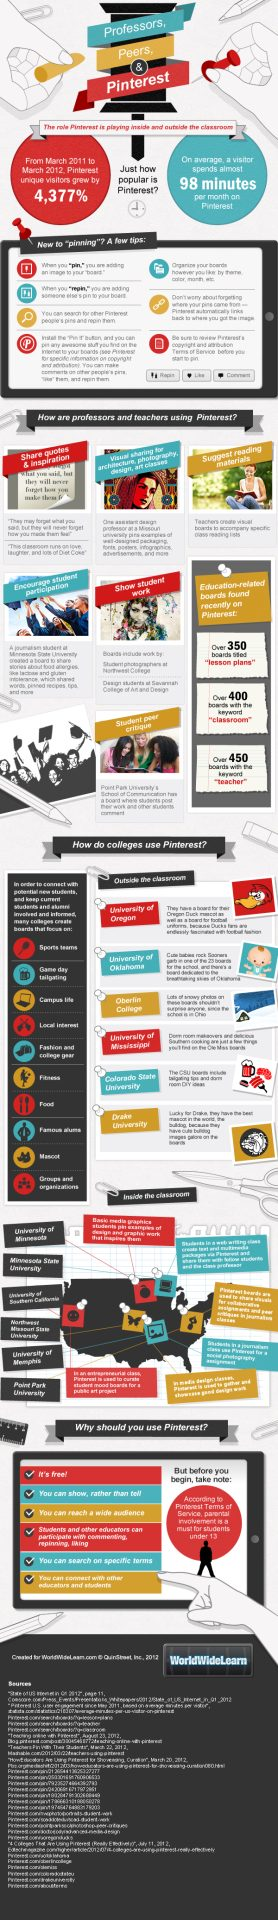 An Educators Guide To Pinterest [Infographic]